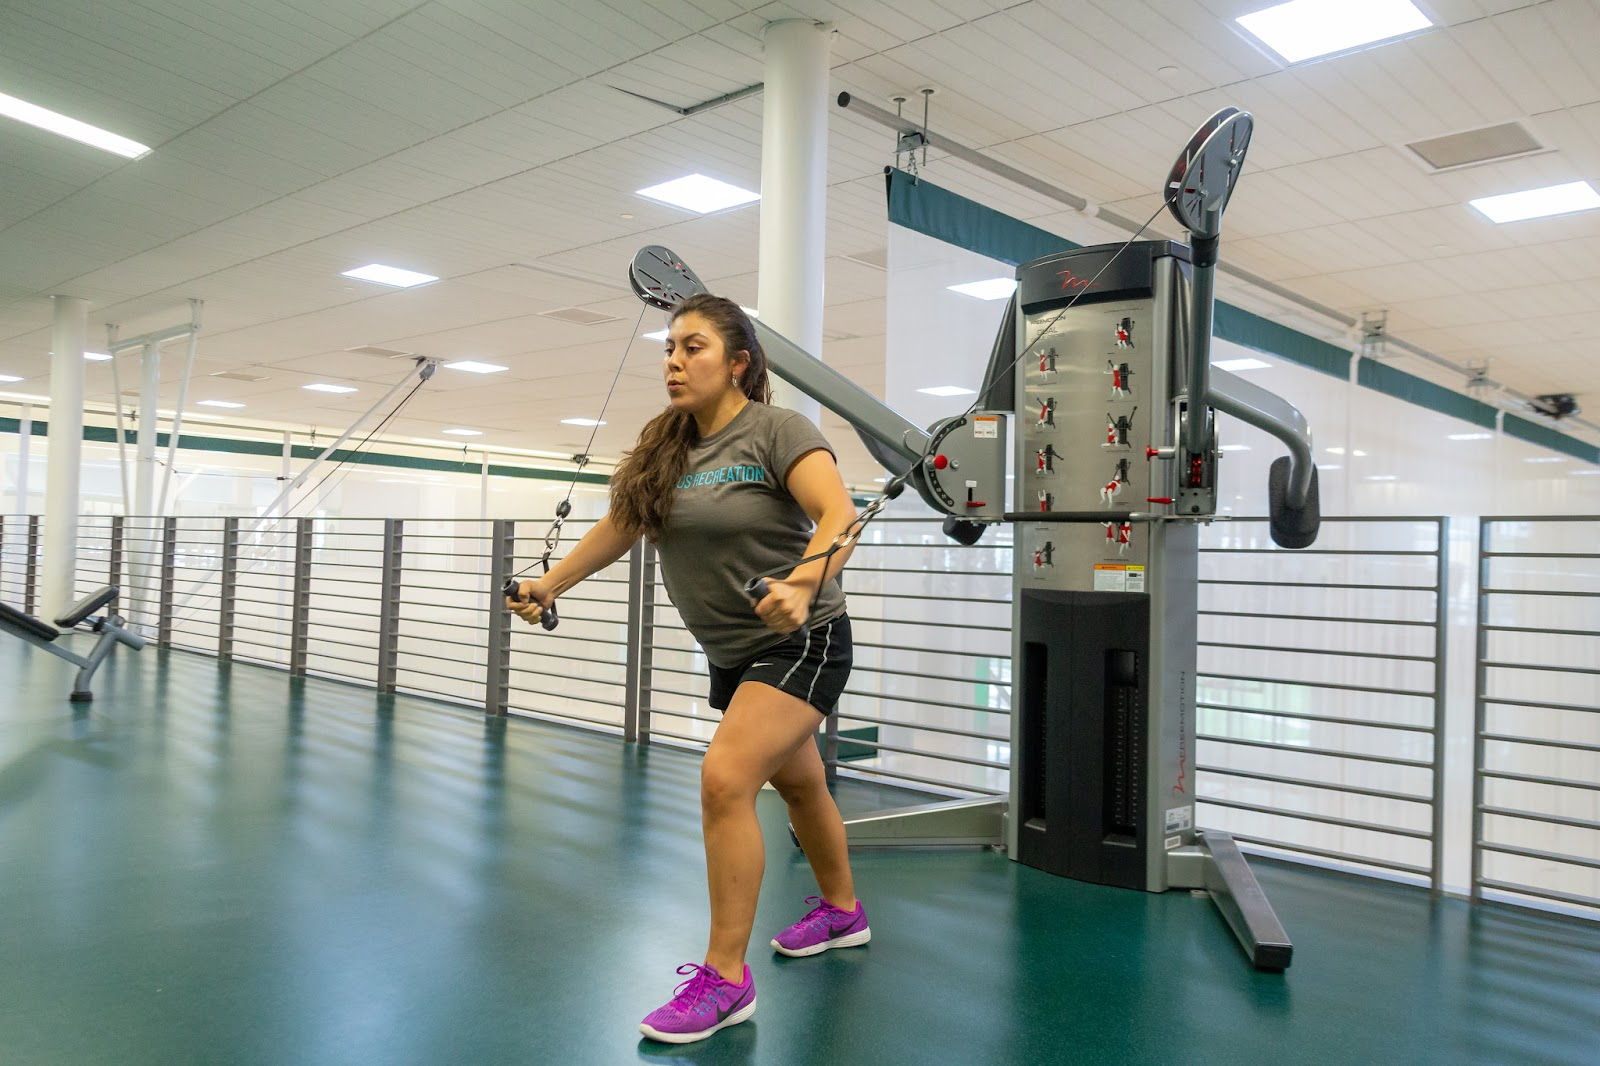 Arellano Rodriguez using workout equipment at the BRIC